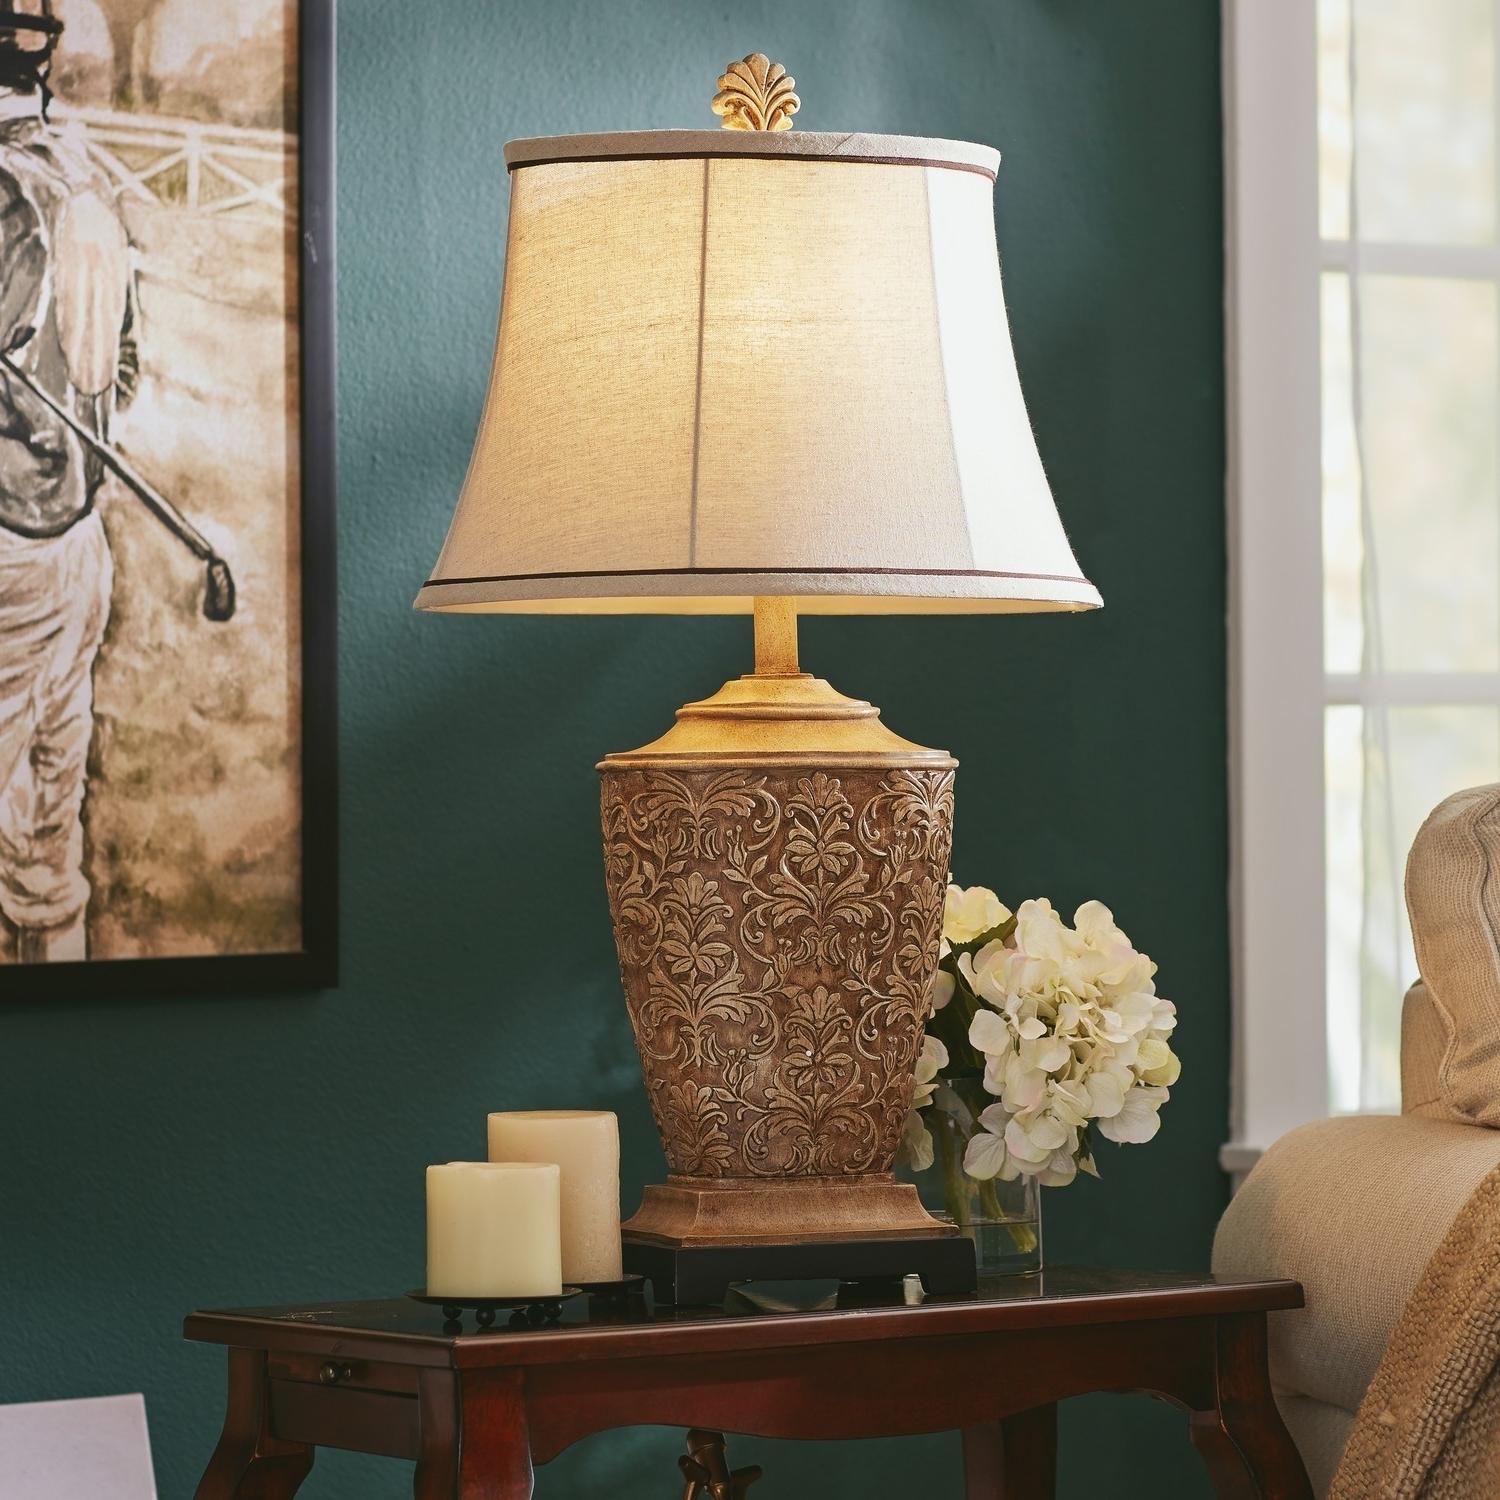 Most Popular Rustic Living Room Table Lamps With Silver Table Lamps Living Room Table Lamps For Living Room (View 3 of 15)